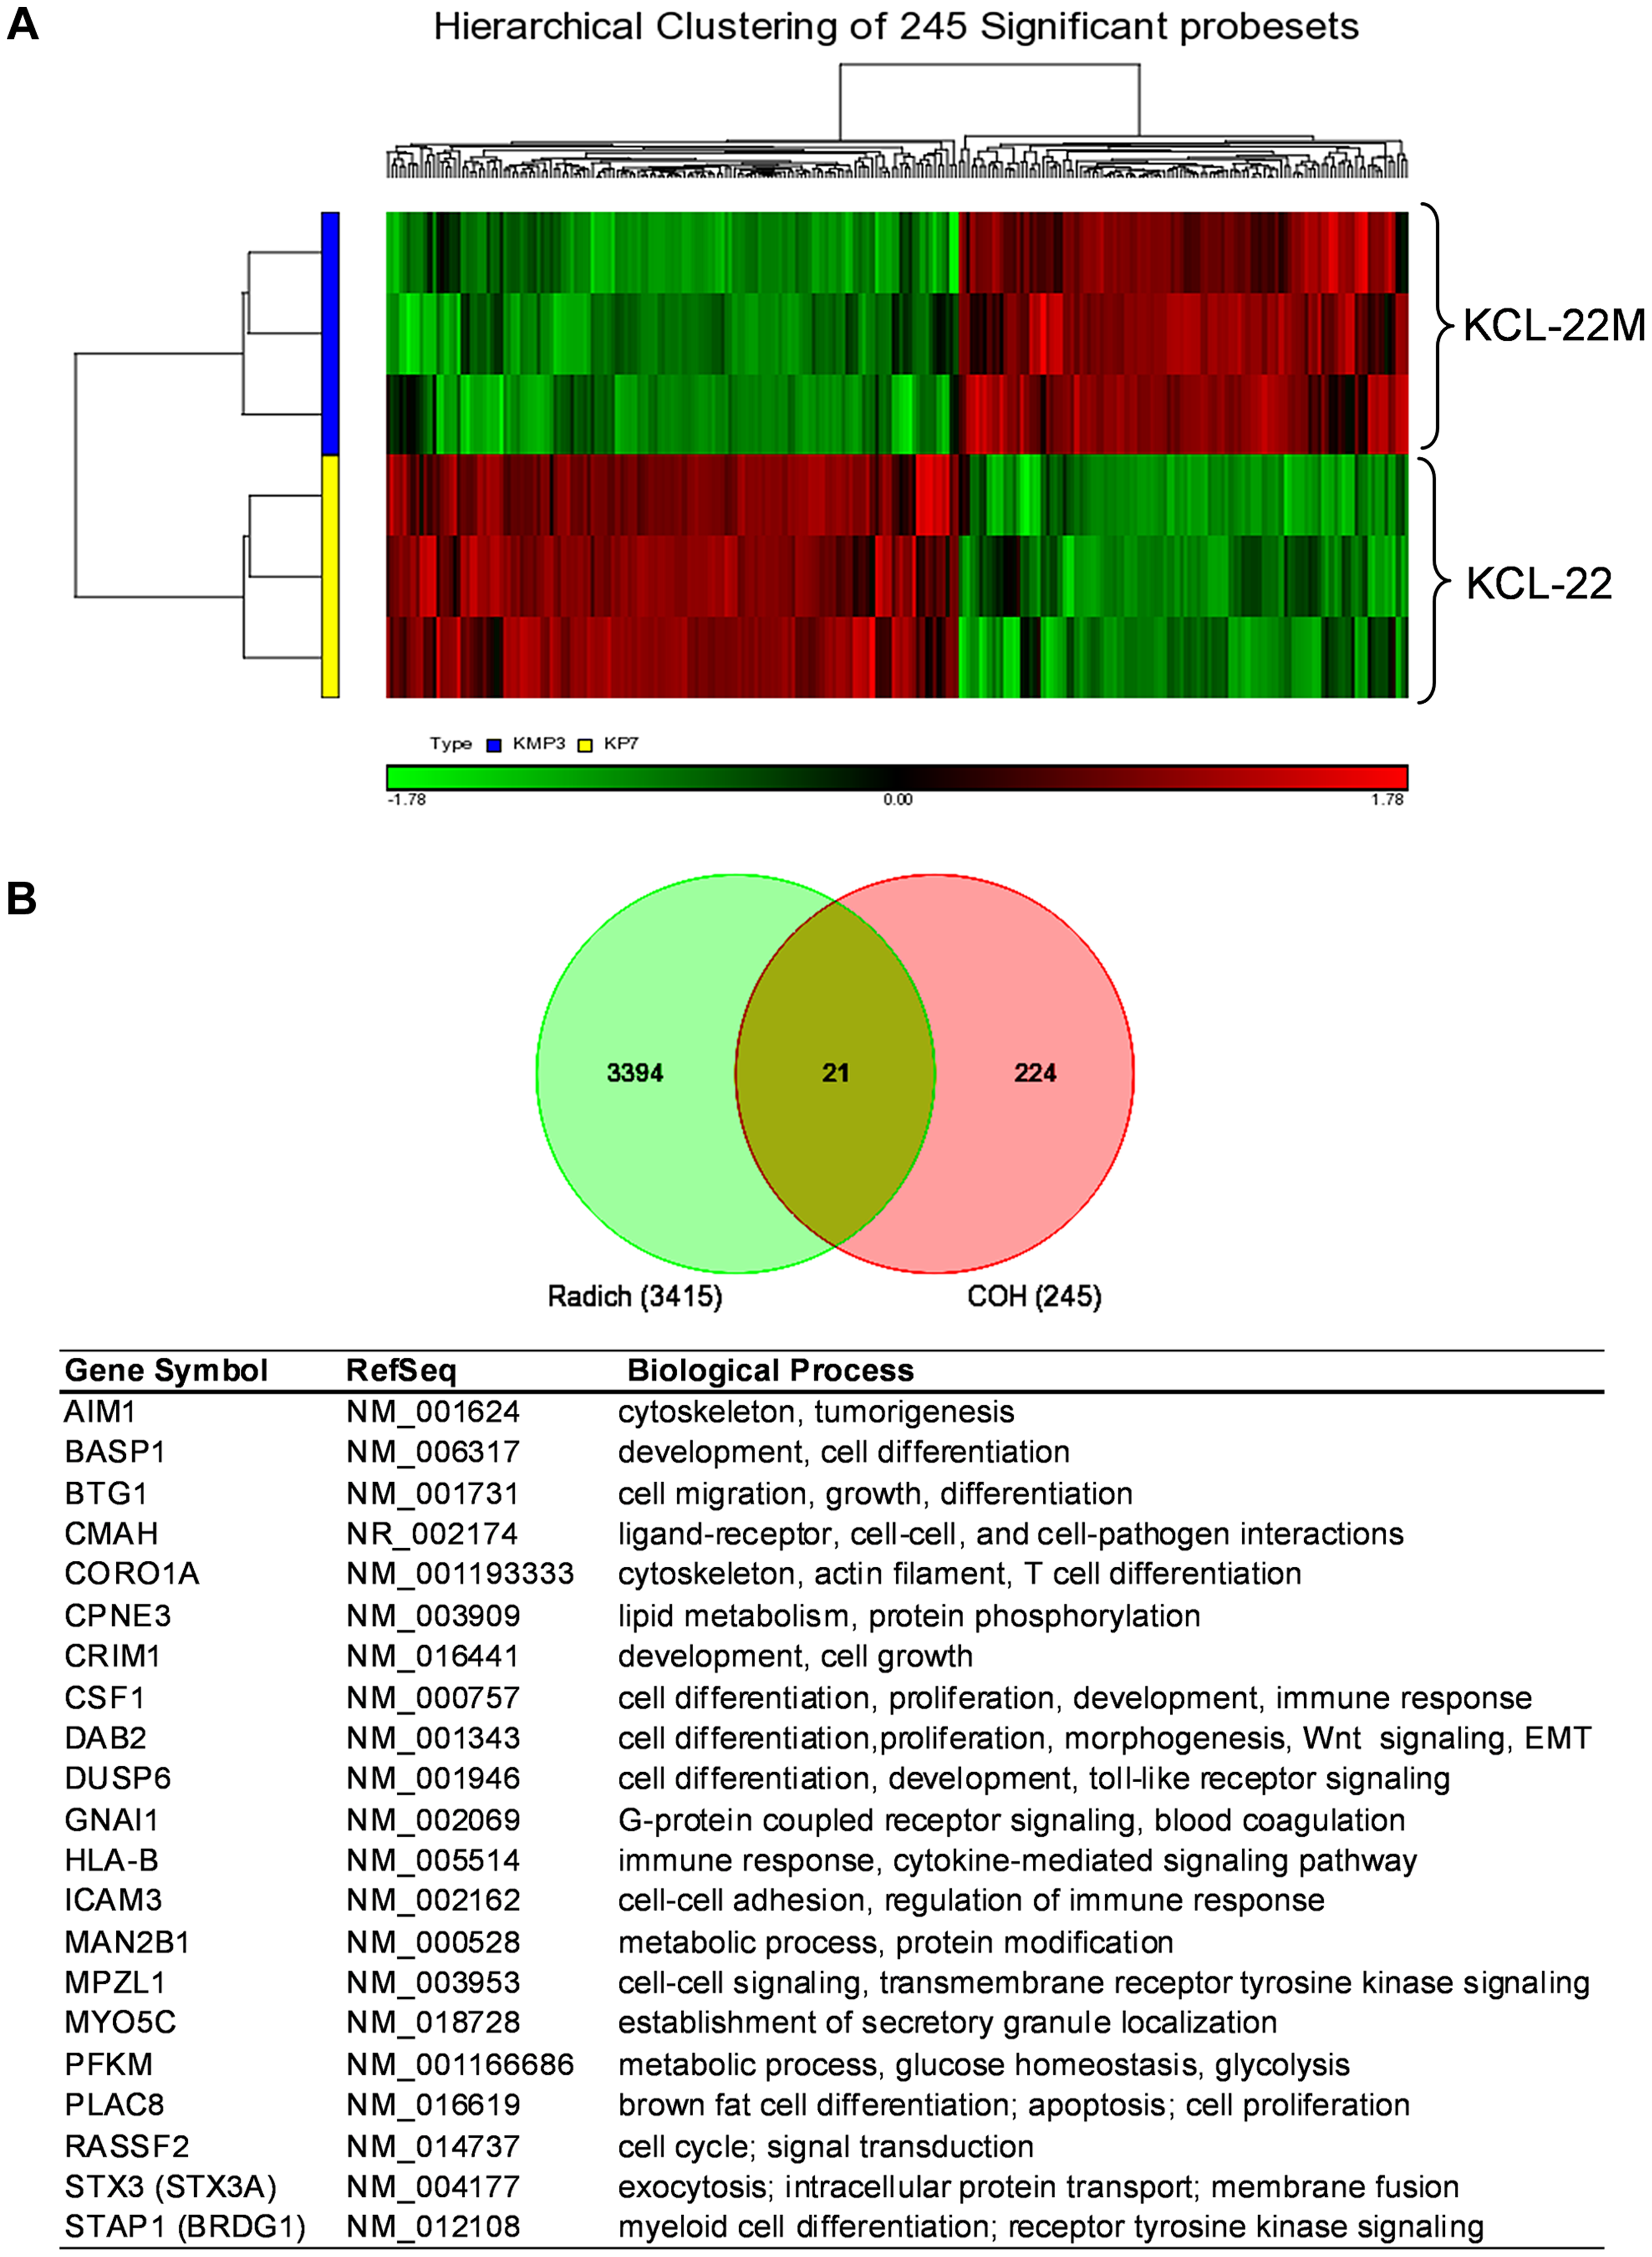 Microarray gene expression analysis of KCL-22 vs KCL-22M cells.